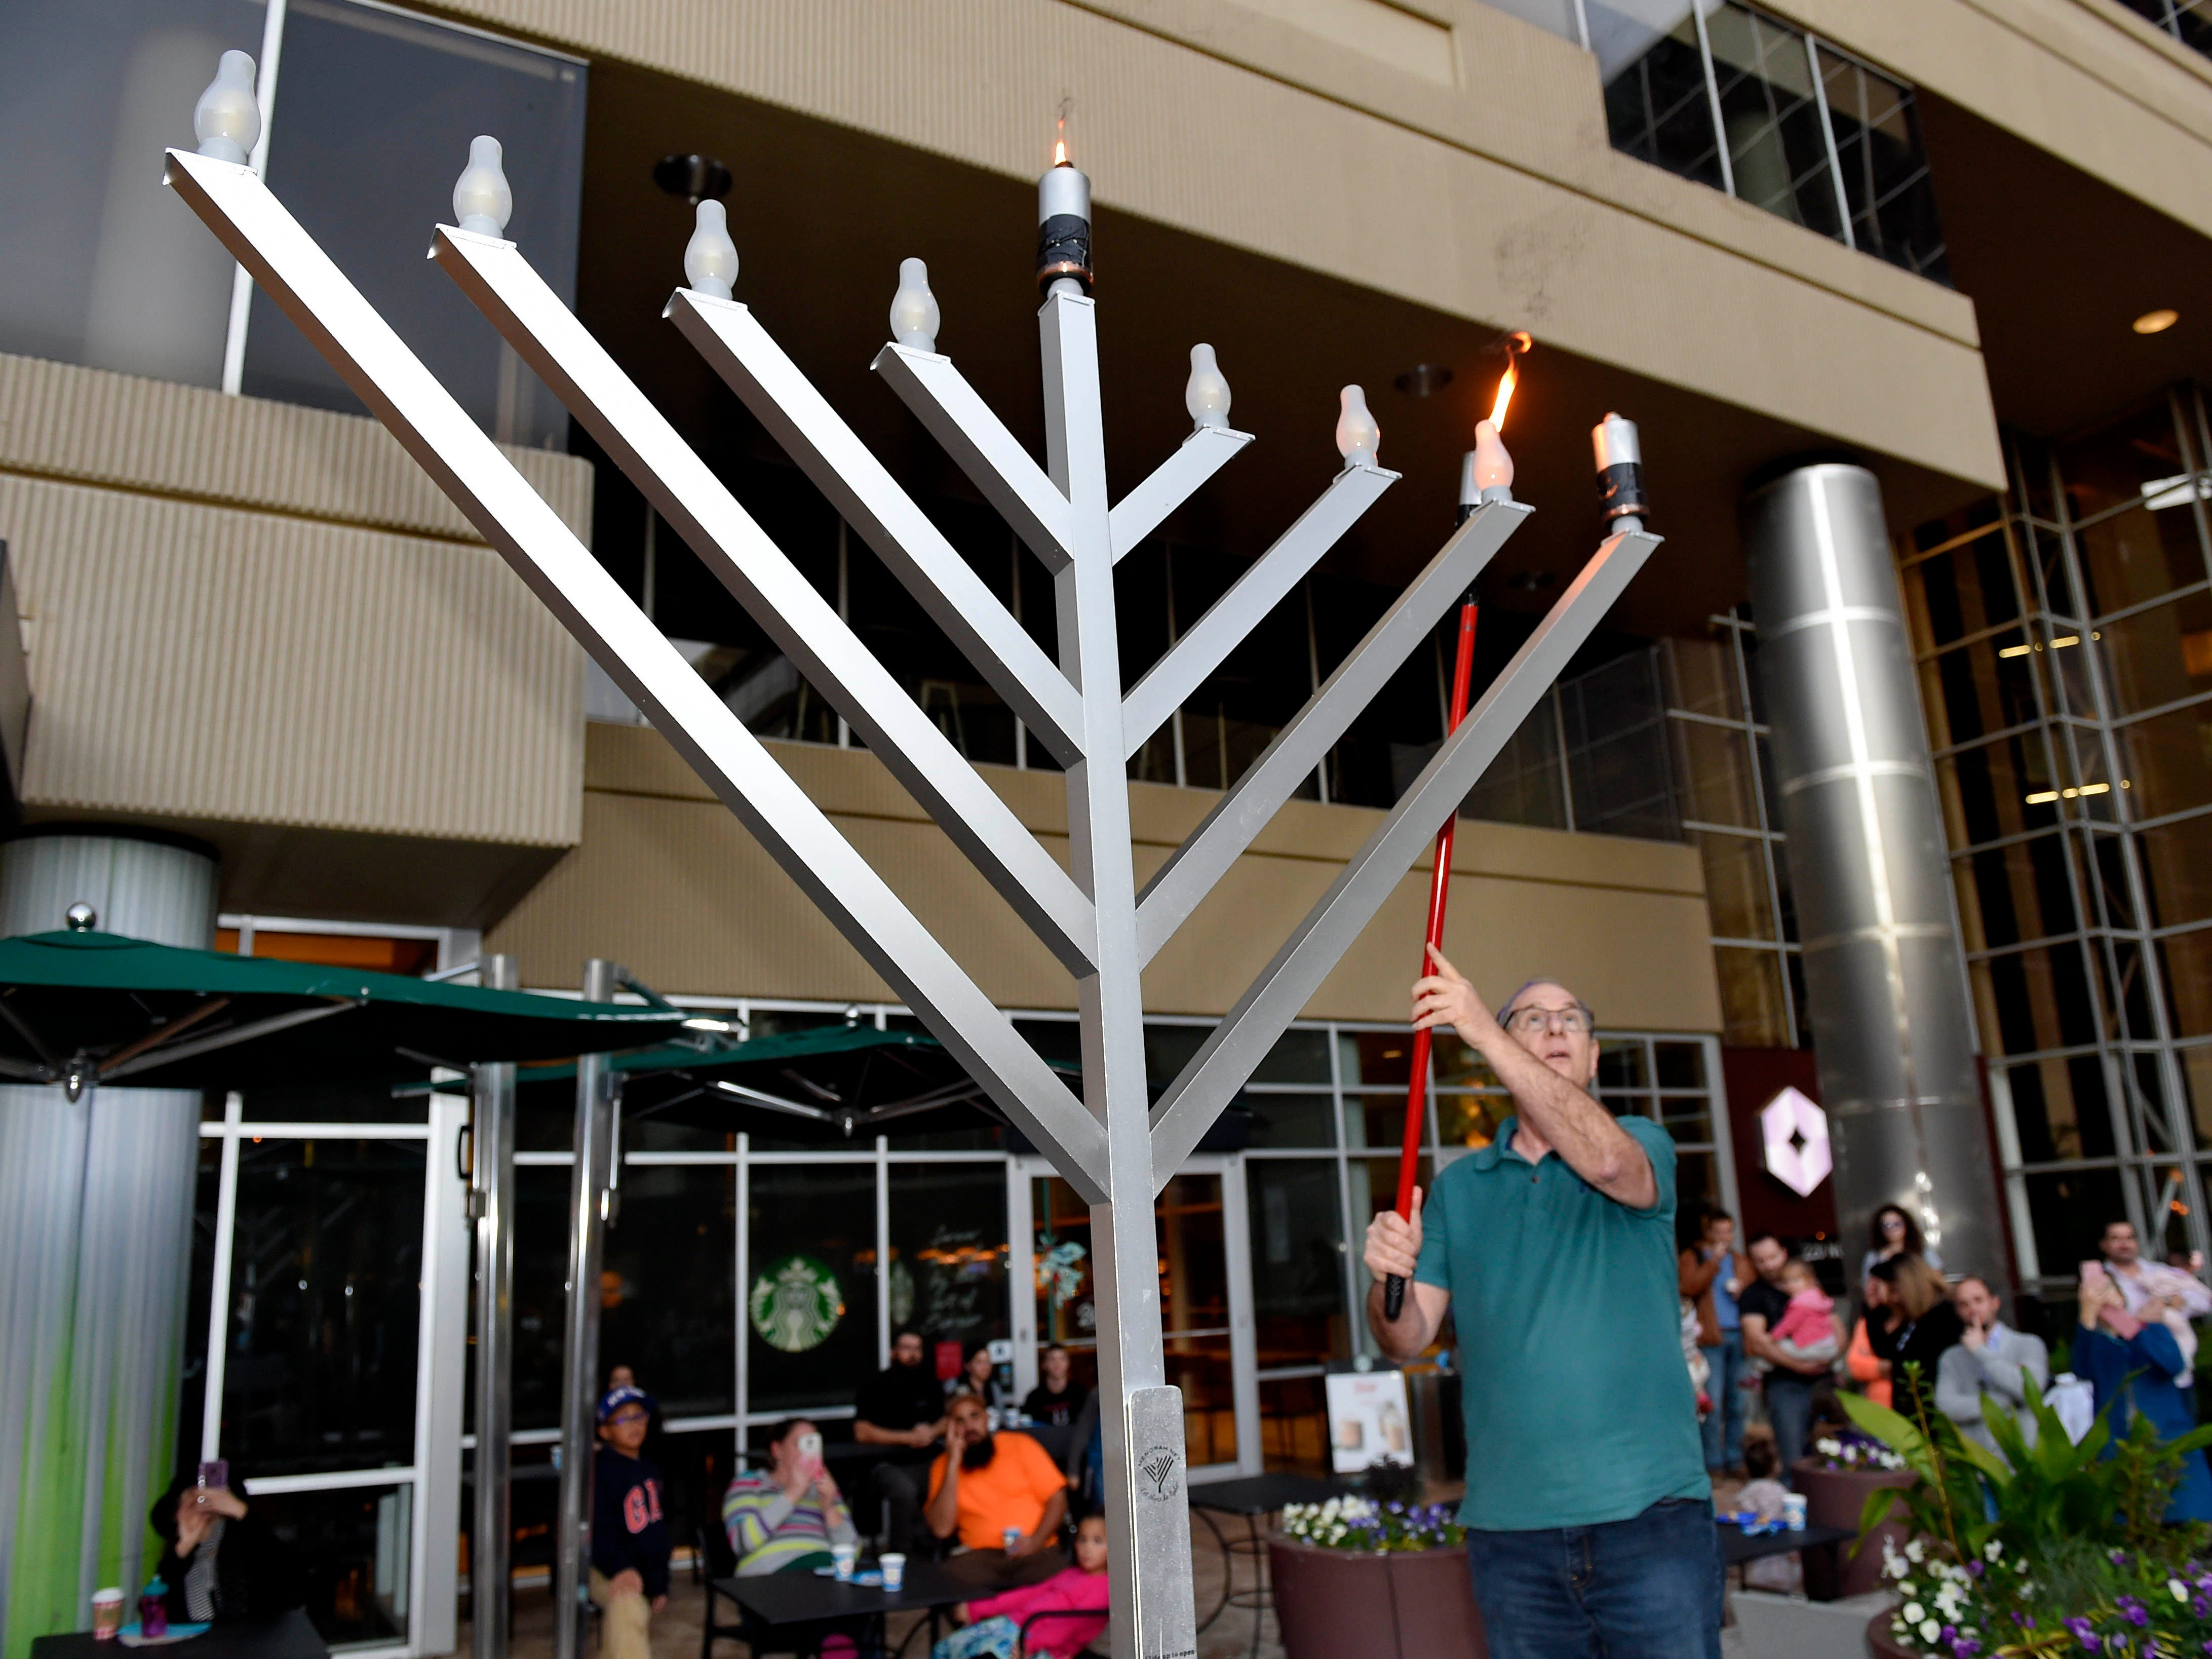 Dr. Michael Wolff lights the menorah. The annual Jewish celebration of Chanukah was kicked off with the lighting of the Menorah at NOMA Square Sunday, Dec. 2, 2018.